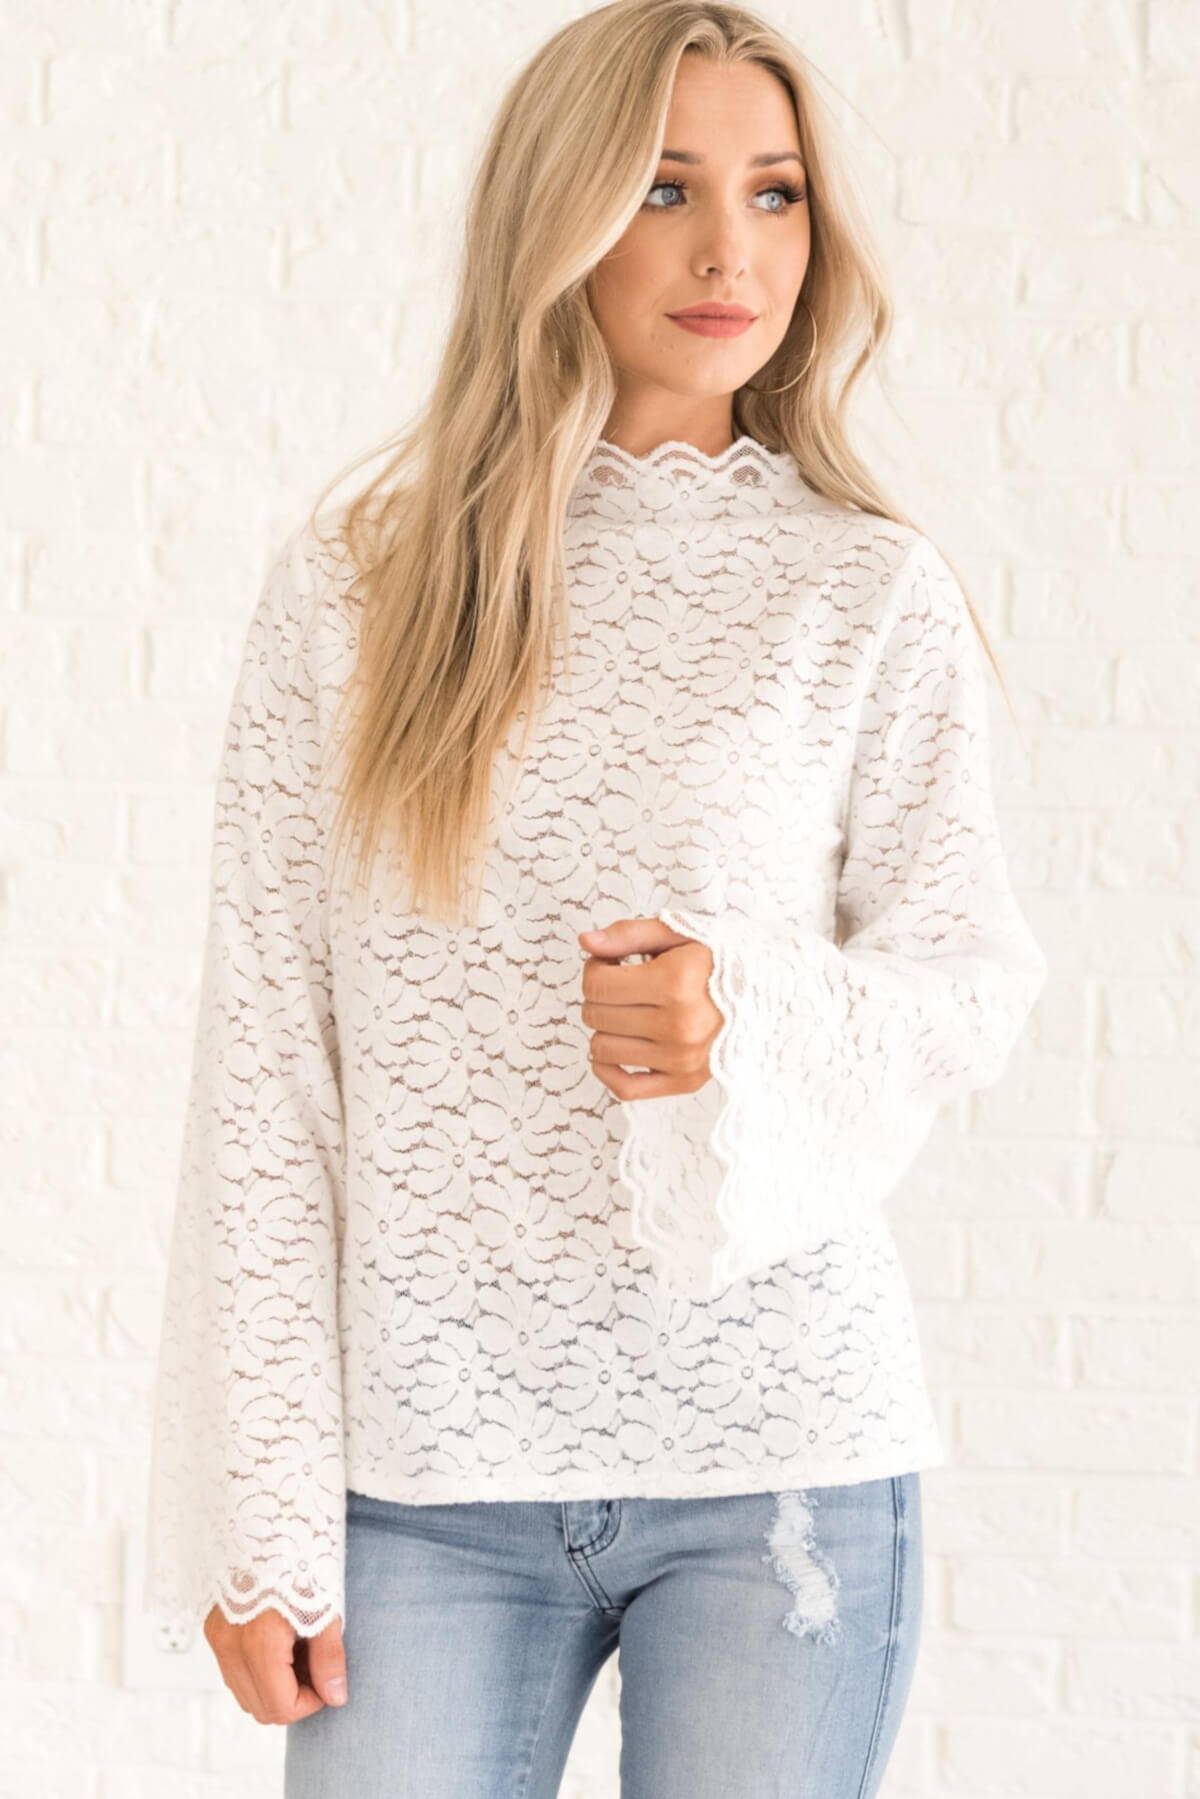 White Crochet Lace Long Bell Sleeve High Mock Neck Boutique Blouses Business Casual for Women